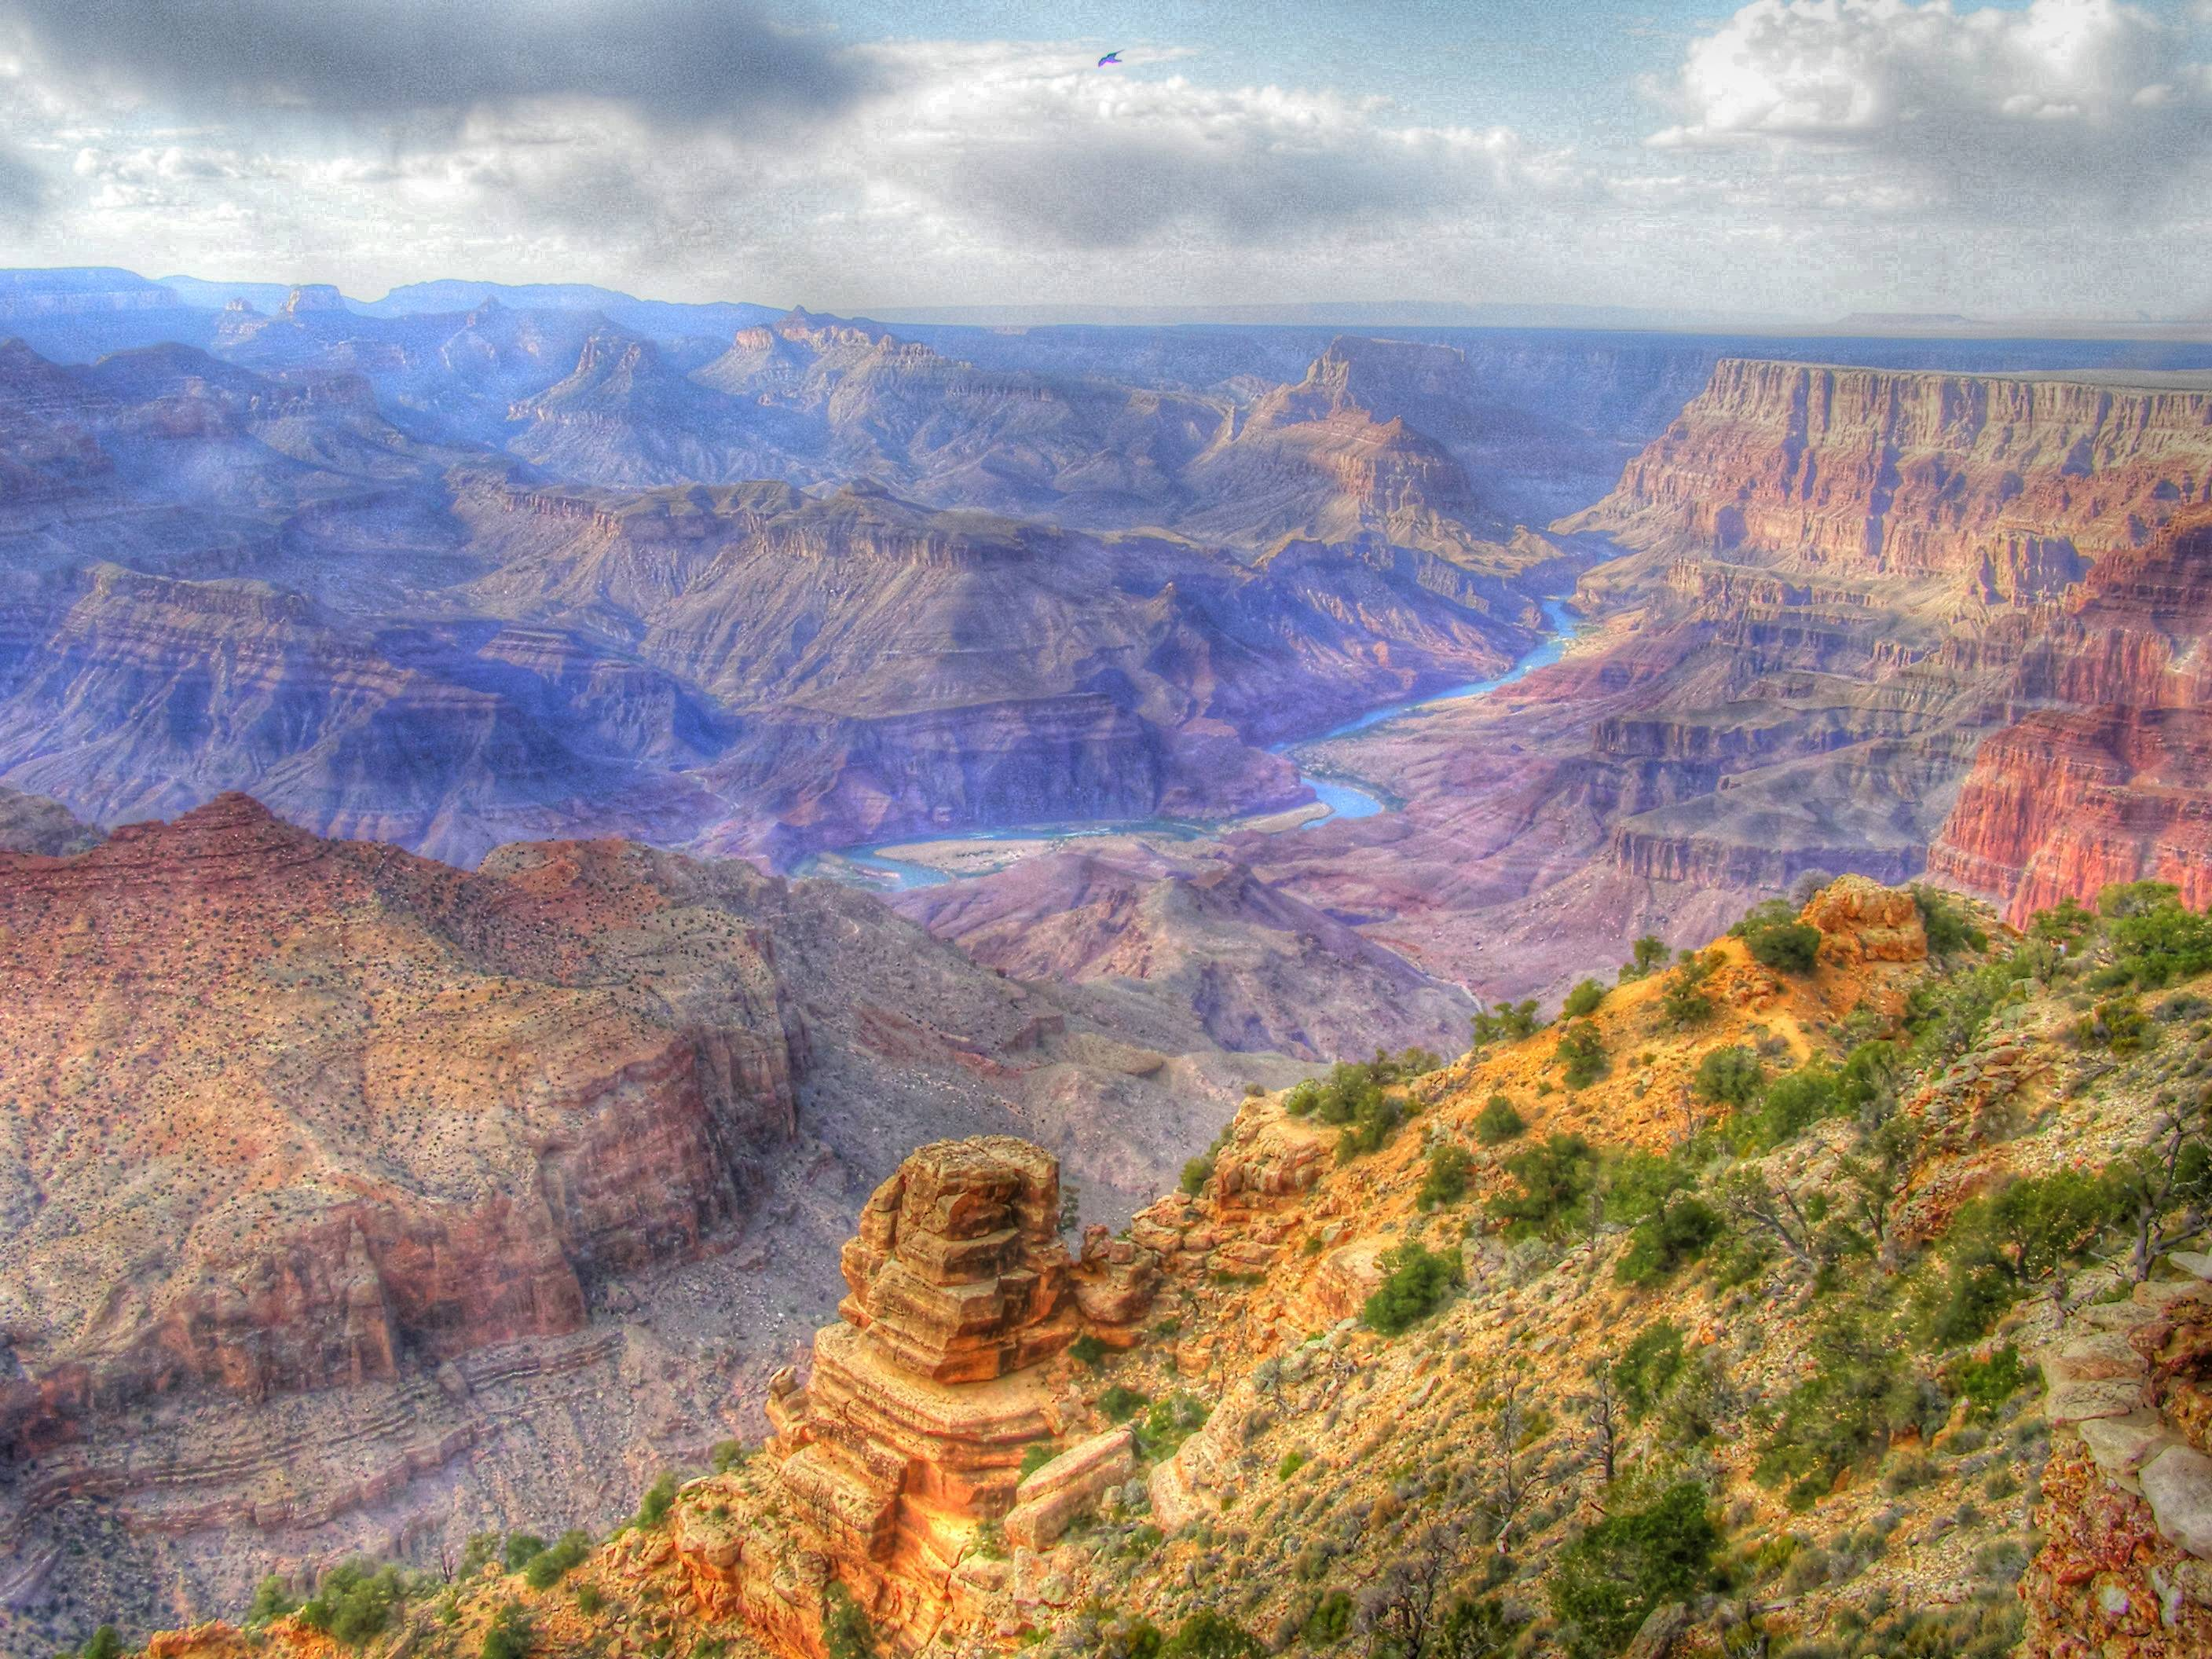 Randy Link of Winfield took this picture at the Grand Canyon.